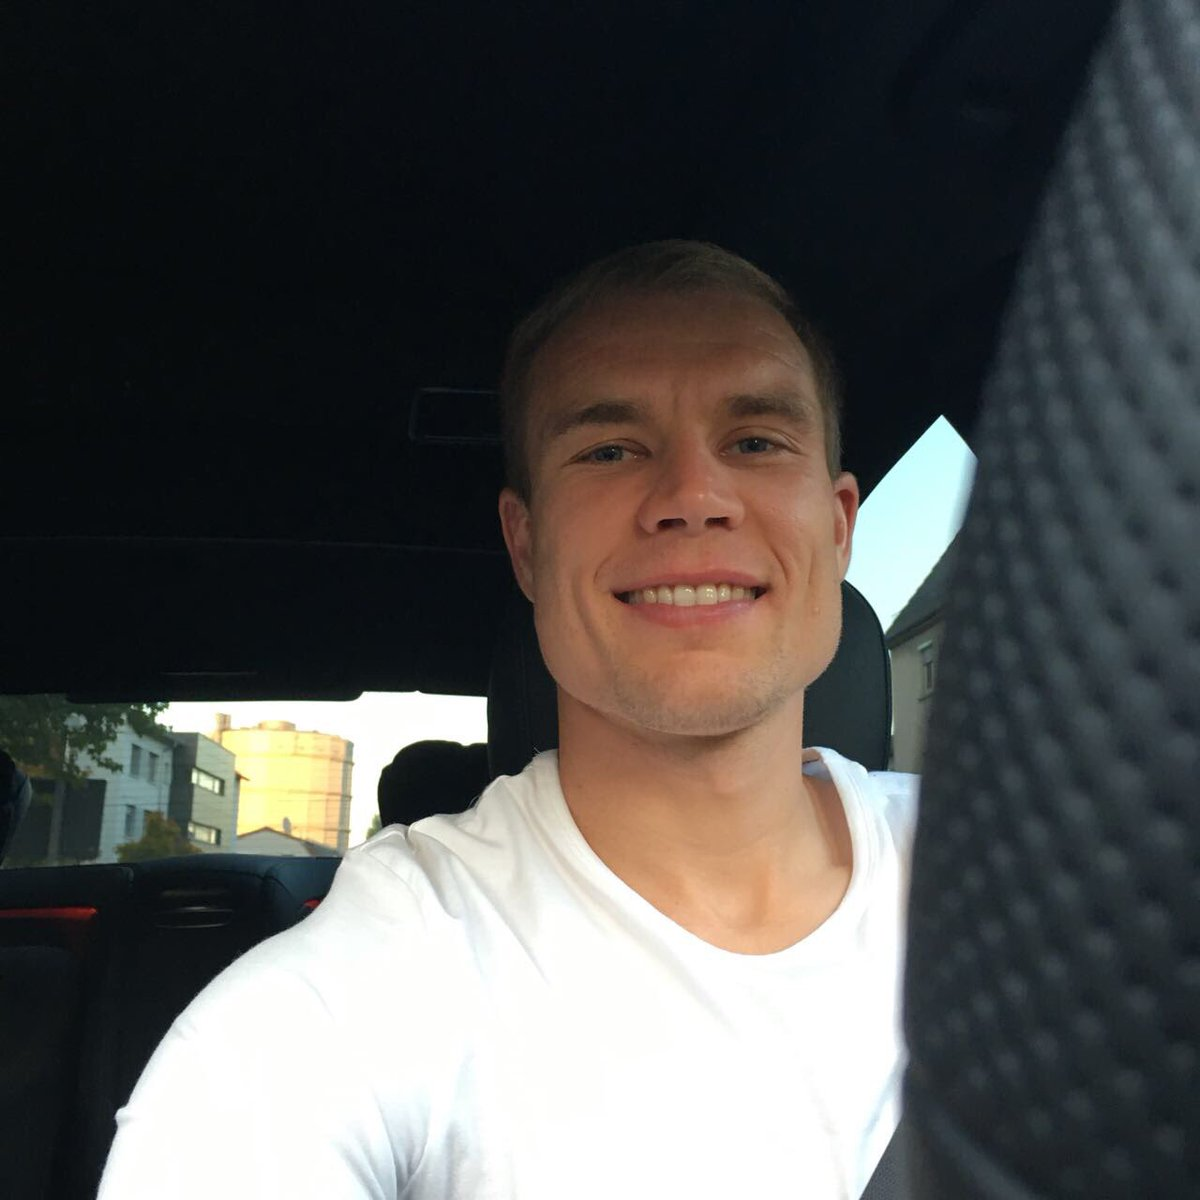 On the way home after a good training session! @VfB #goodenergy https:...